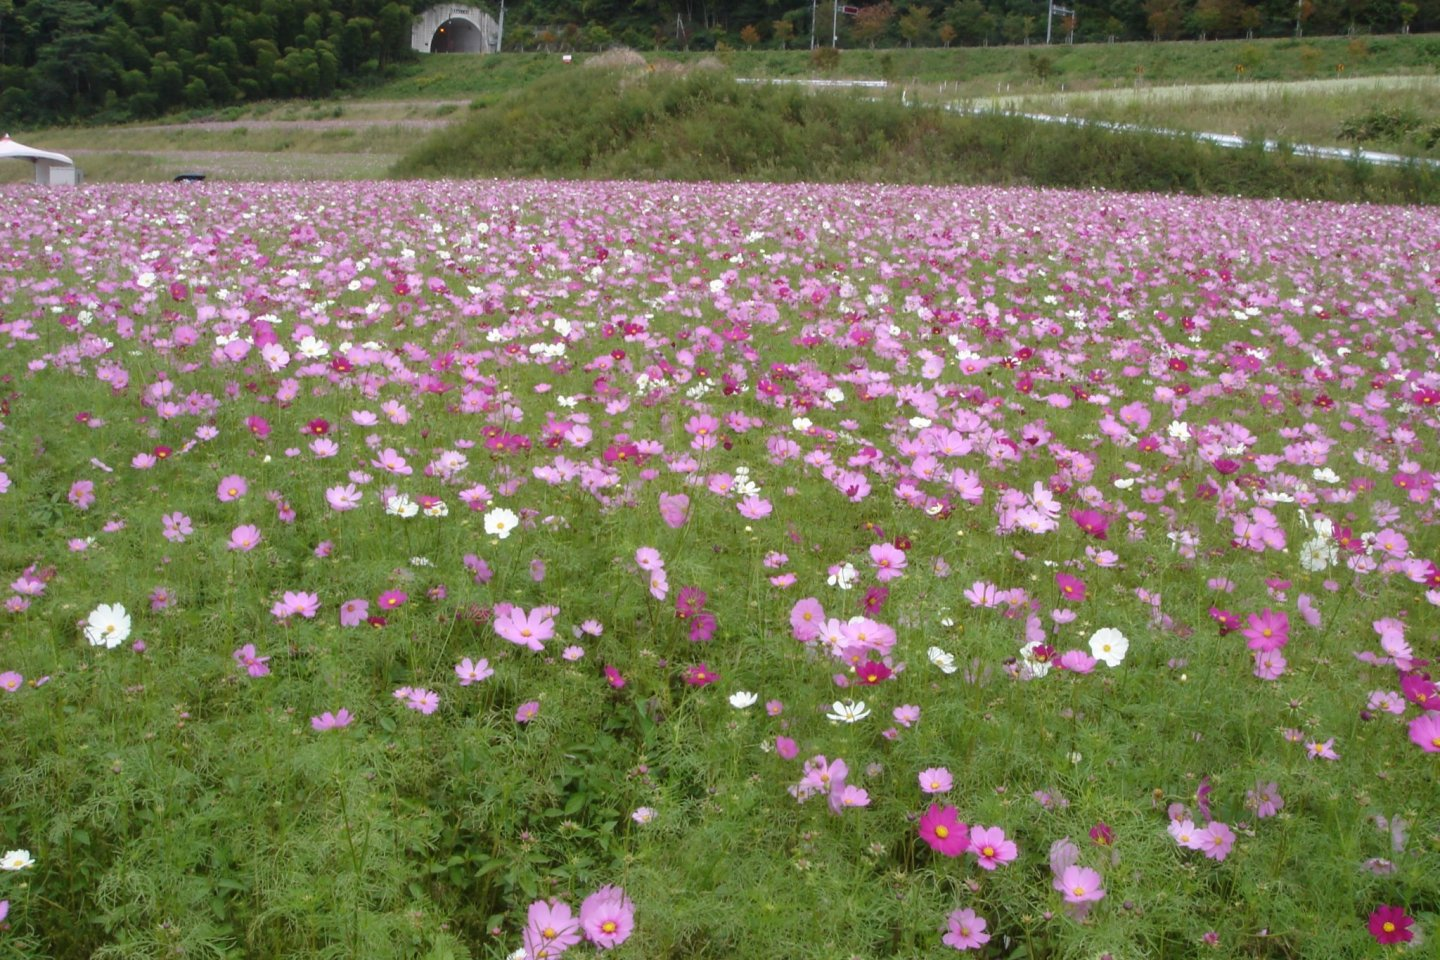 Iinan Town in Shimane is home to hundreds of thousands of cosmos in autumn